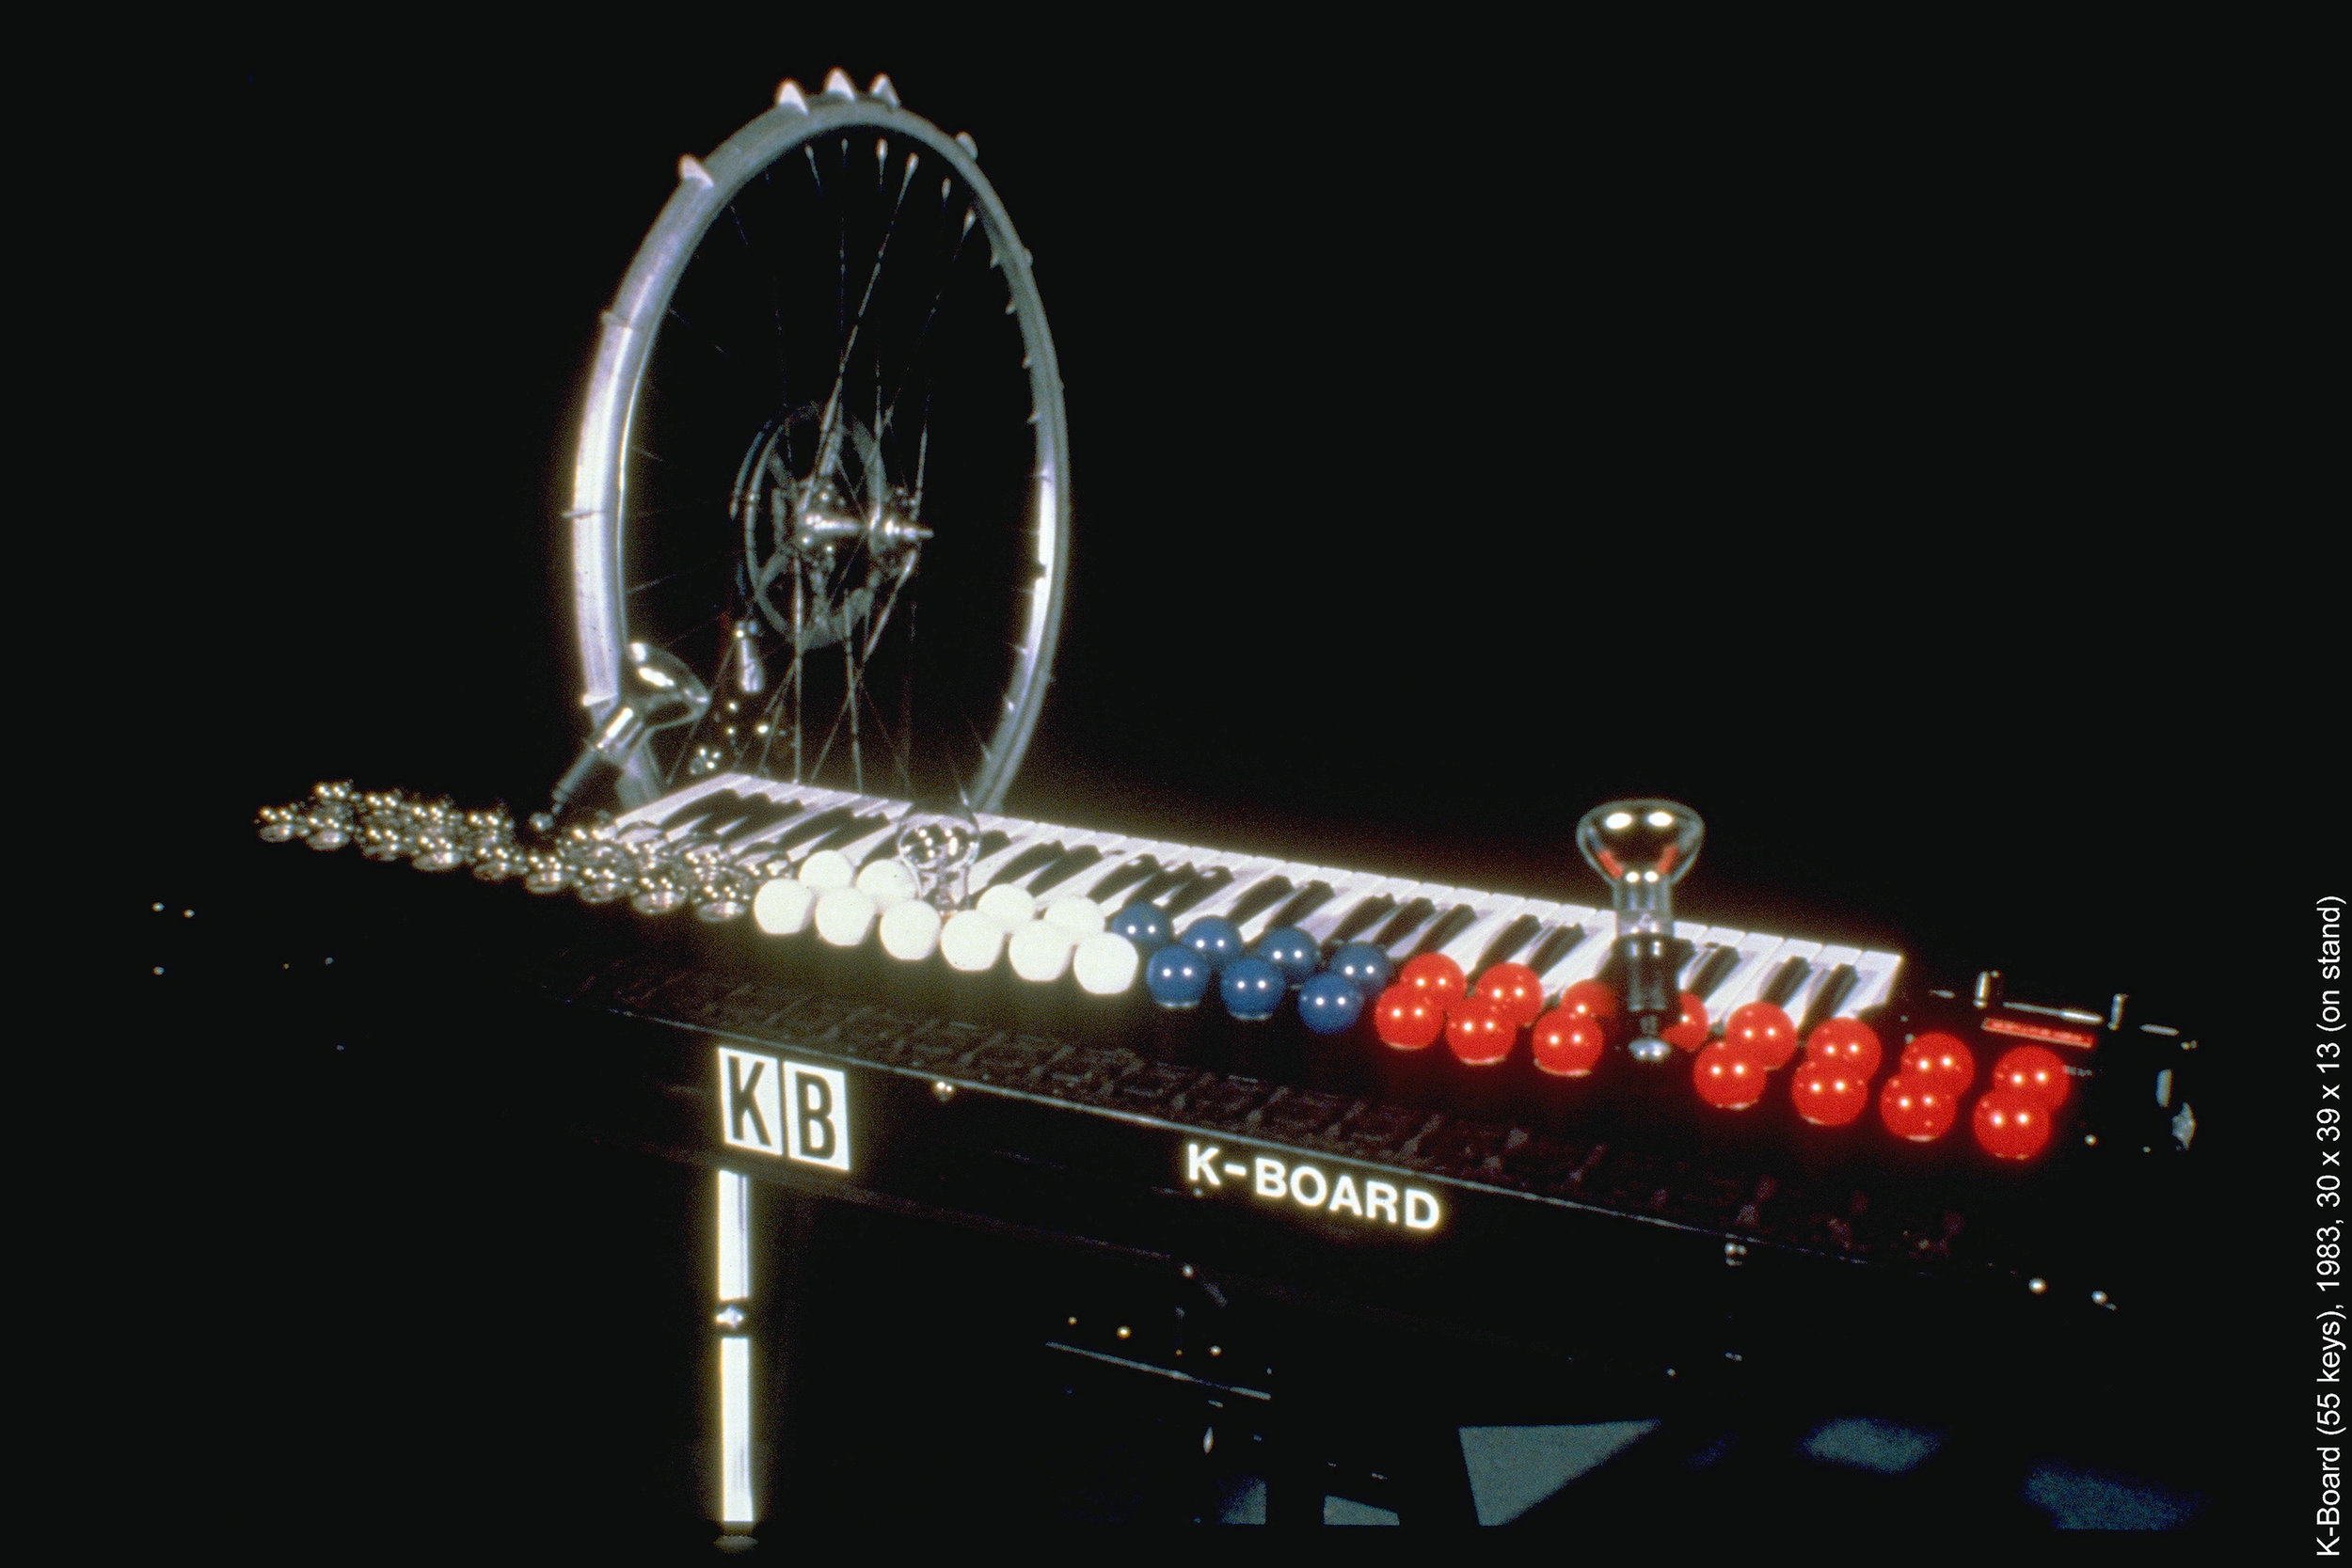 """'K-Board'  (55 keys), 1983, 30 x 39 x 13 (on stand). The K-Board was fashioned from a 55-key organ keyboard with micro switches mounted under the keys which control 55 AC electrical plugs in front of the keys. Each key turns on whatever is plugged into the corresponding outlet. I put a single string directly under the keys lengthwise which is """"fretted"""" or stopped by a small rubber foot on each key. An auto-strum wheel with picks strums the amplified string generating a continuous rhythm, and keys play bass-like microtonal melodies along with light images when pressed."""